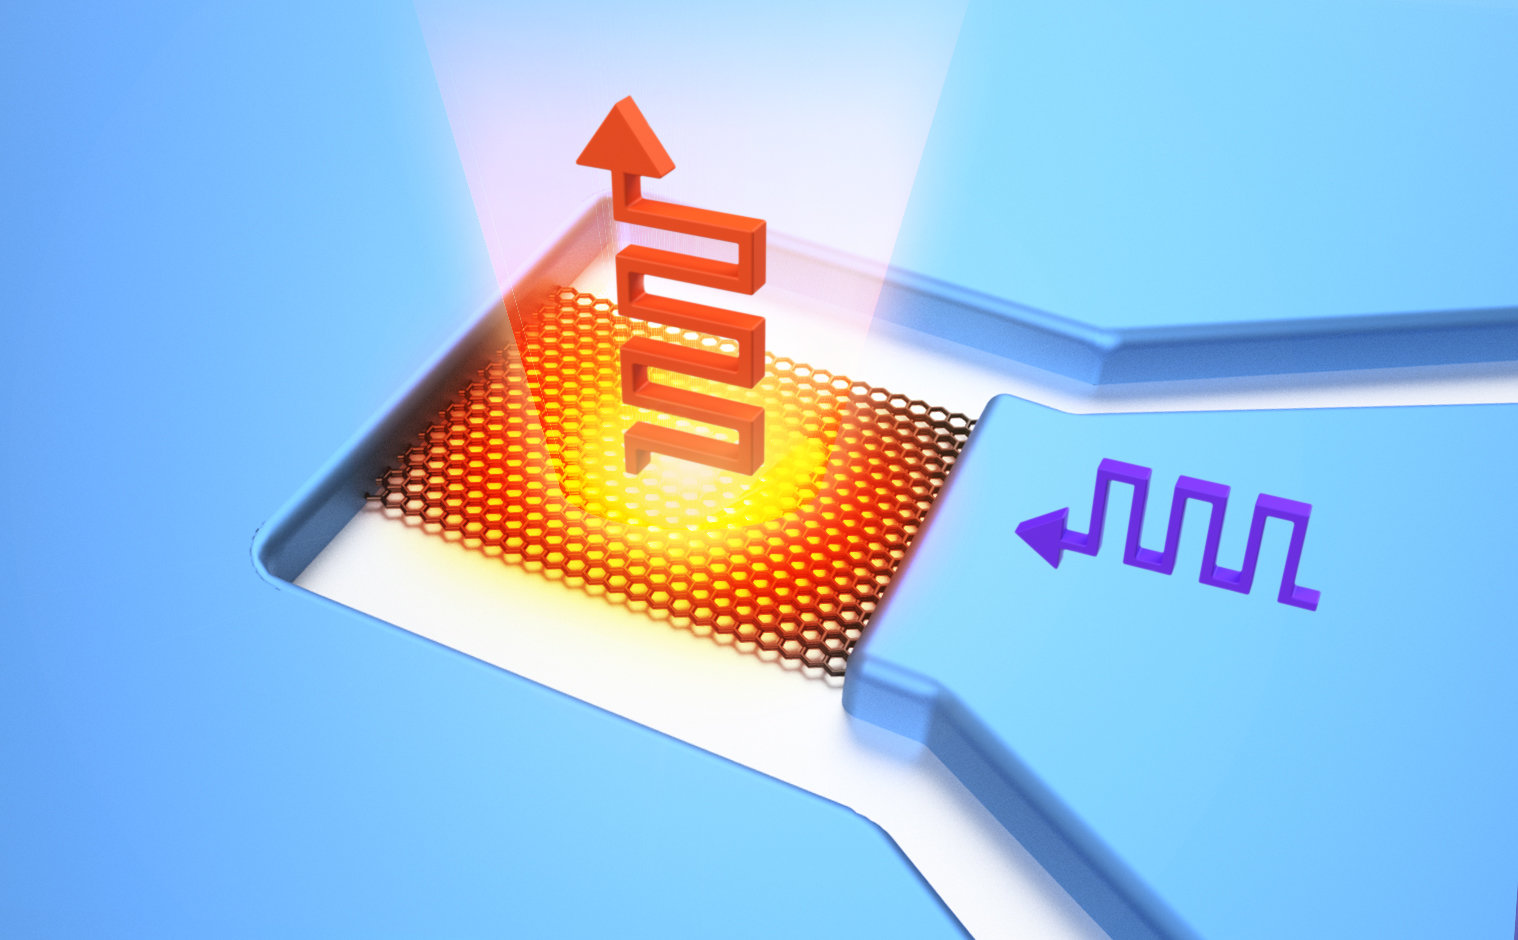 High Speed Light Emitters Integrated On Silicon Chips Can Enable Novel  Architectures For Silicon Based Optoelectronics.